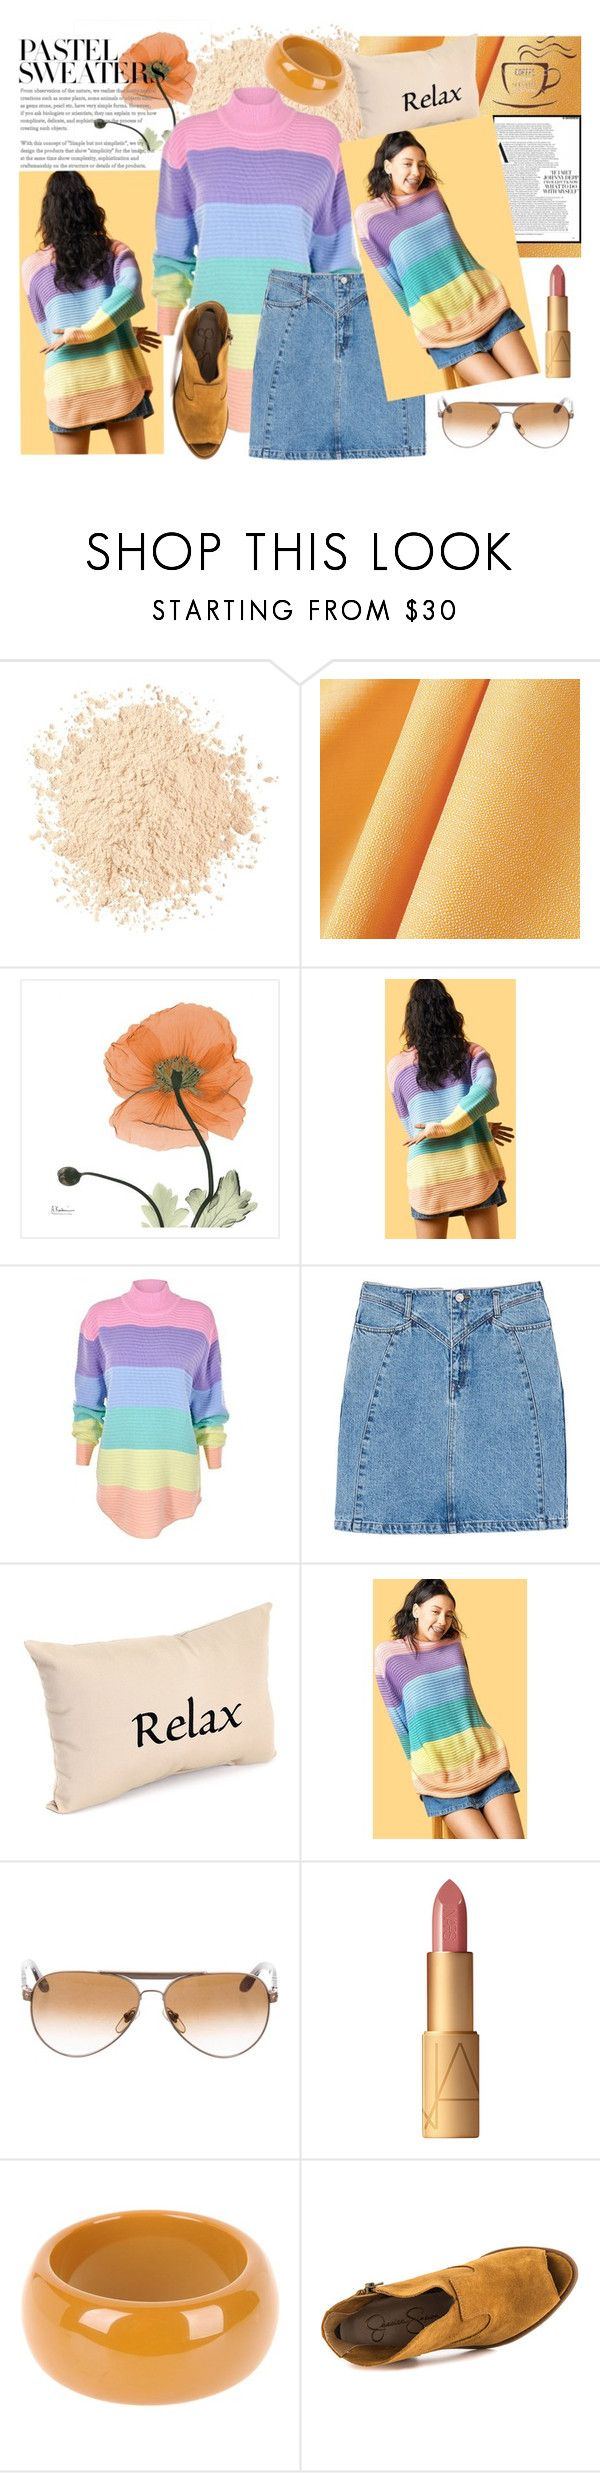 """""""Gentle palette"""" by eveofdestruction88 ❤ liked on Polyvore featuring Urban Decay, UNIF, MANGO, Persol, NARS Cosmetics, Dsquared2, Jessica Simpson, Sweater and pastelsweaters"""